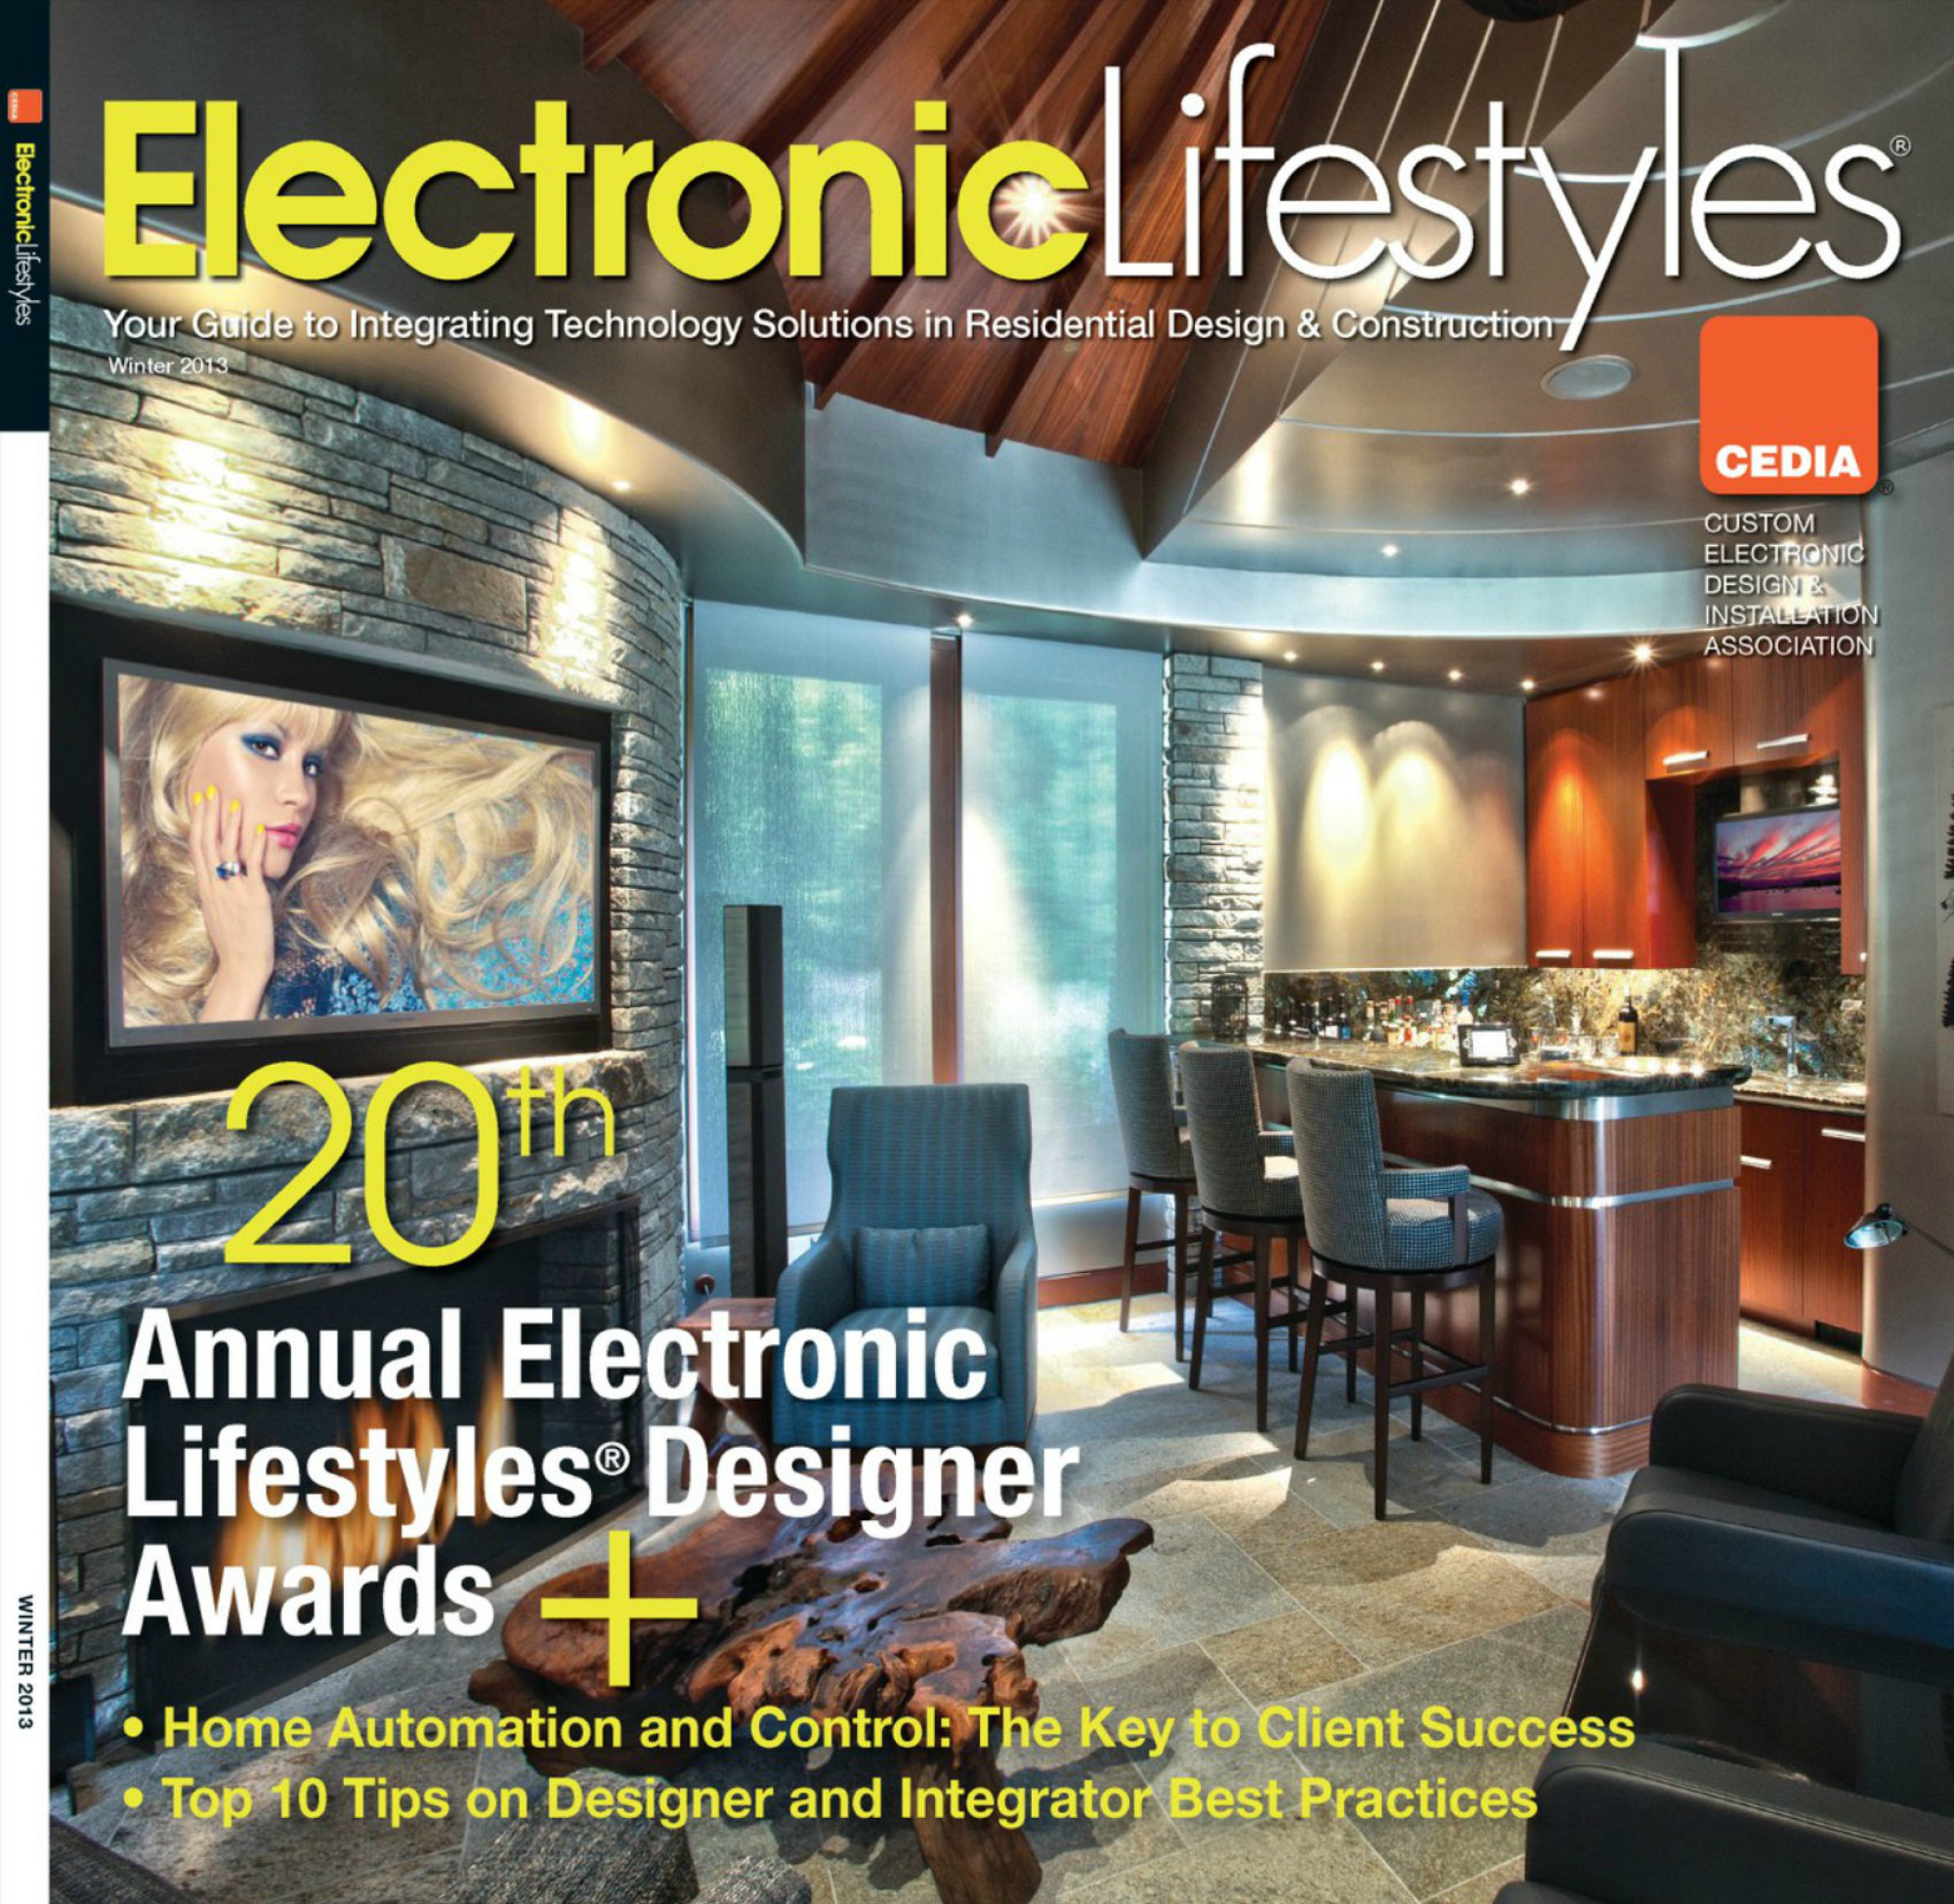 Annual Electronic Lifestyles Designer Awards